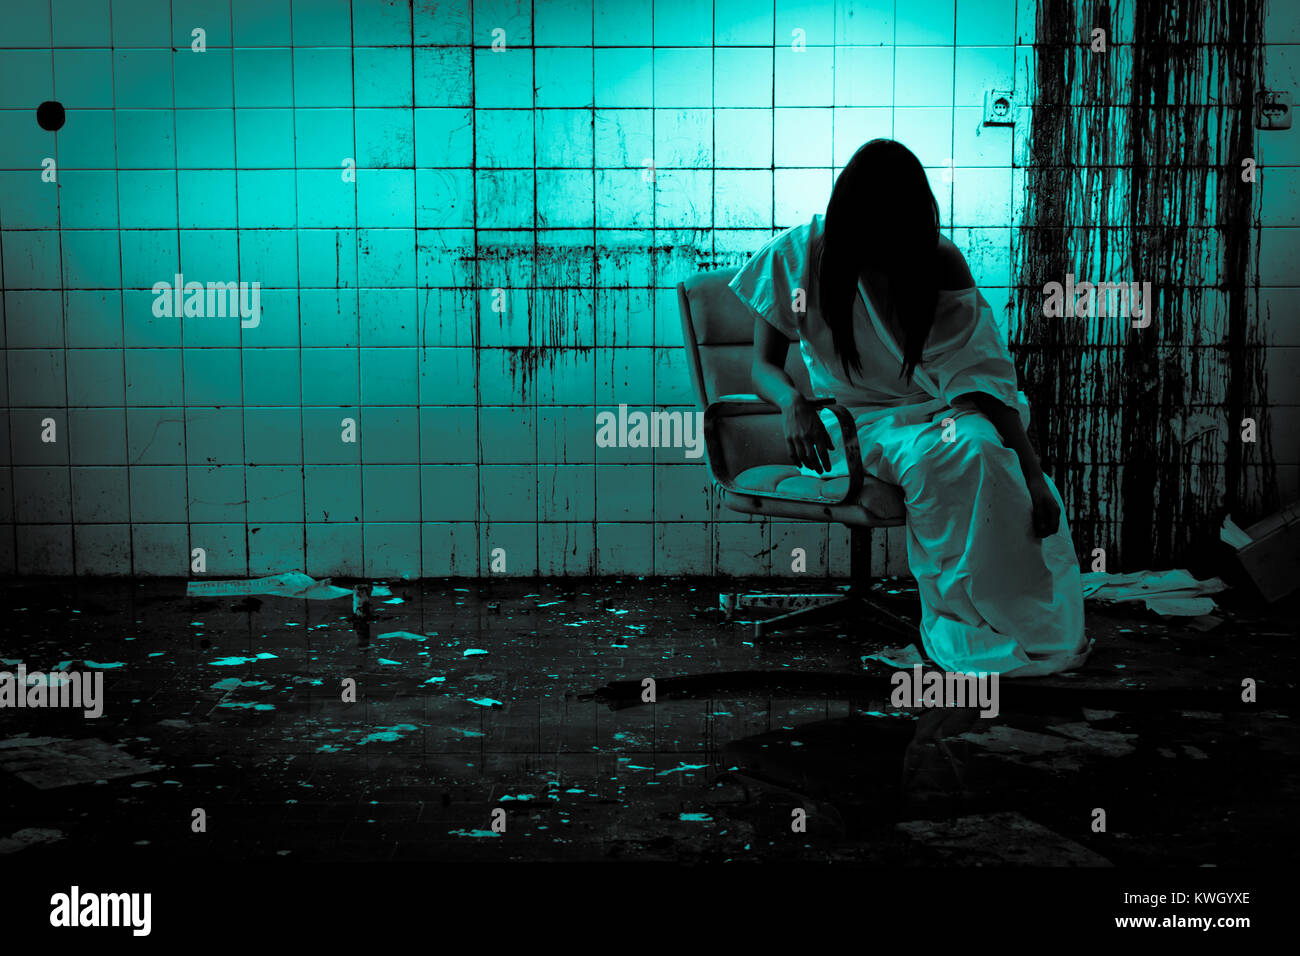 Horror scene of a scary woman - Stock Image